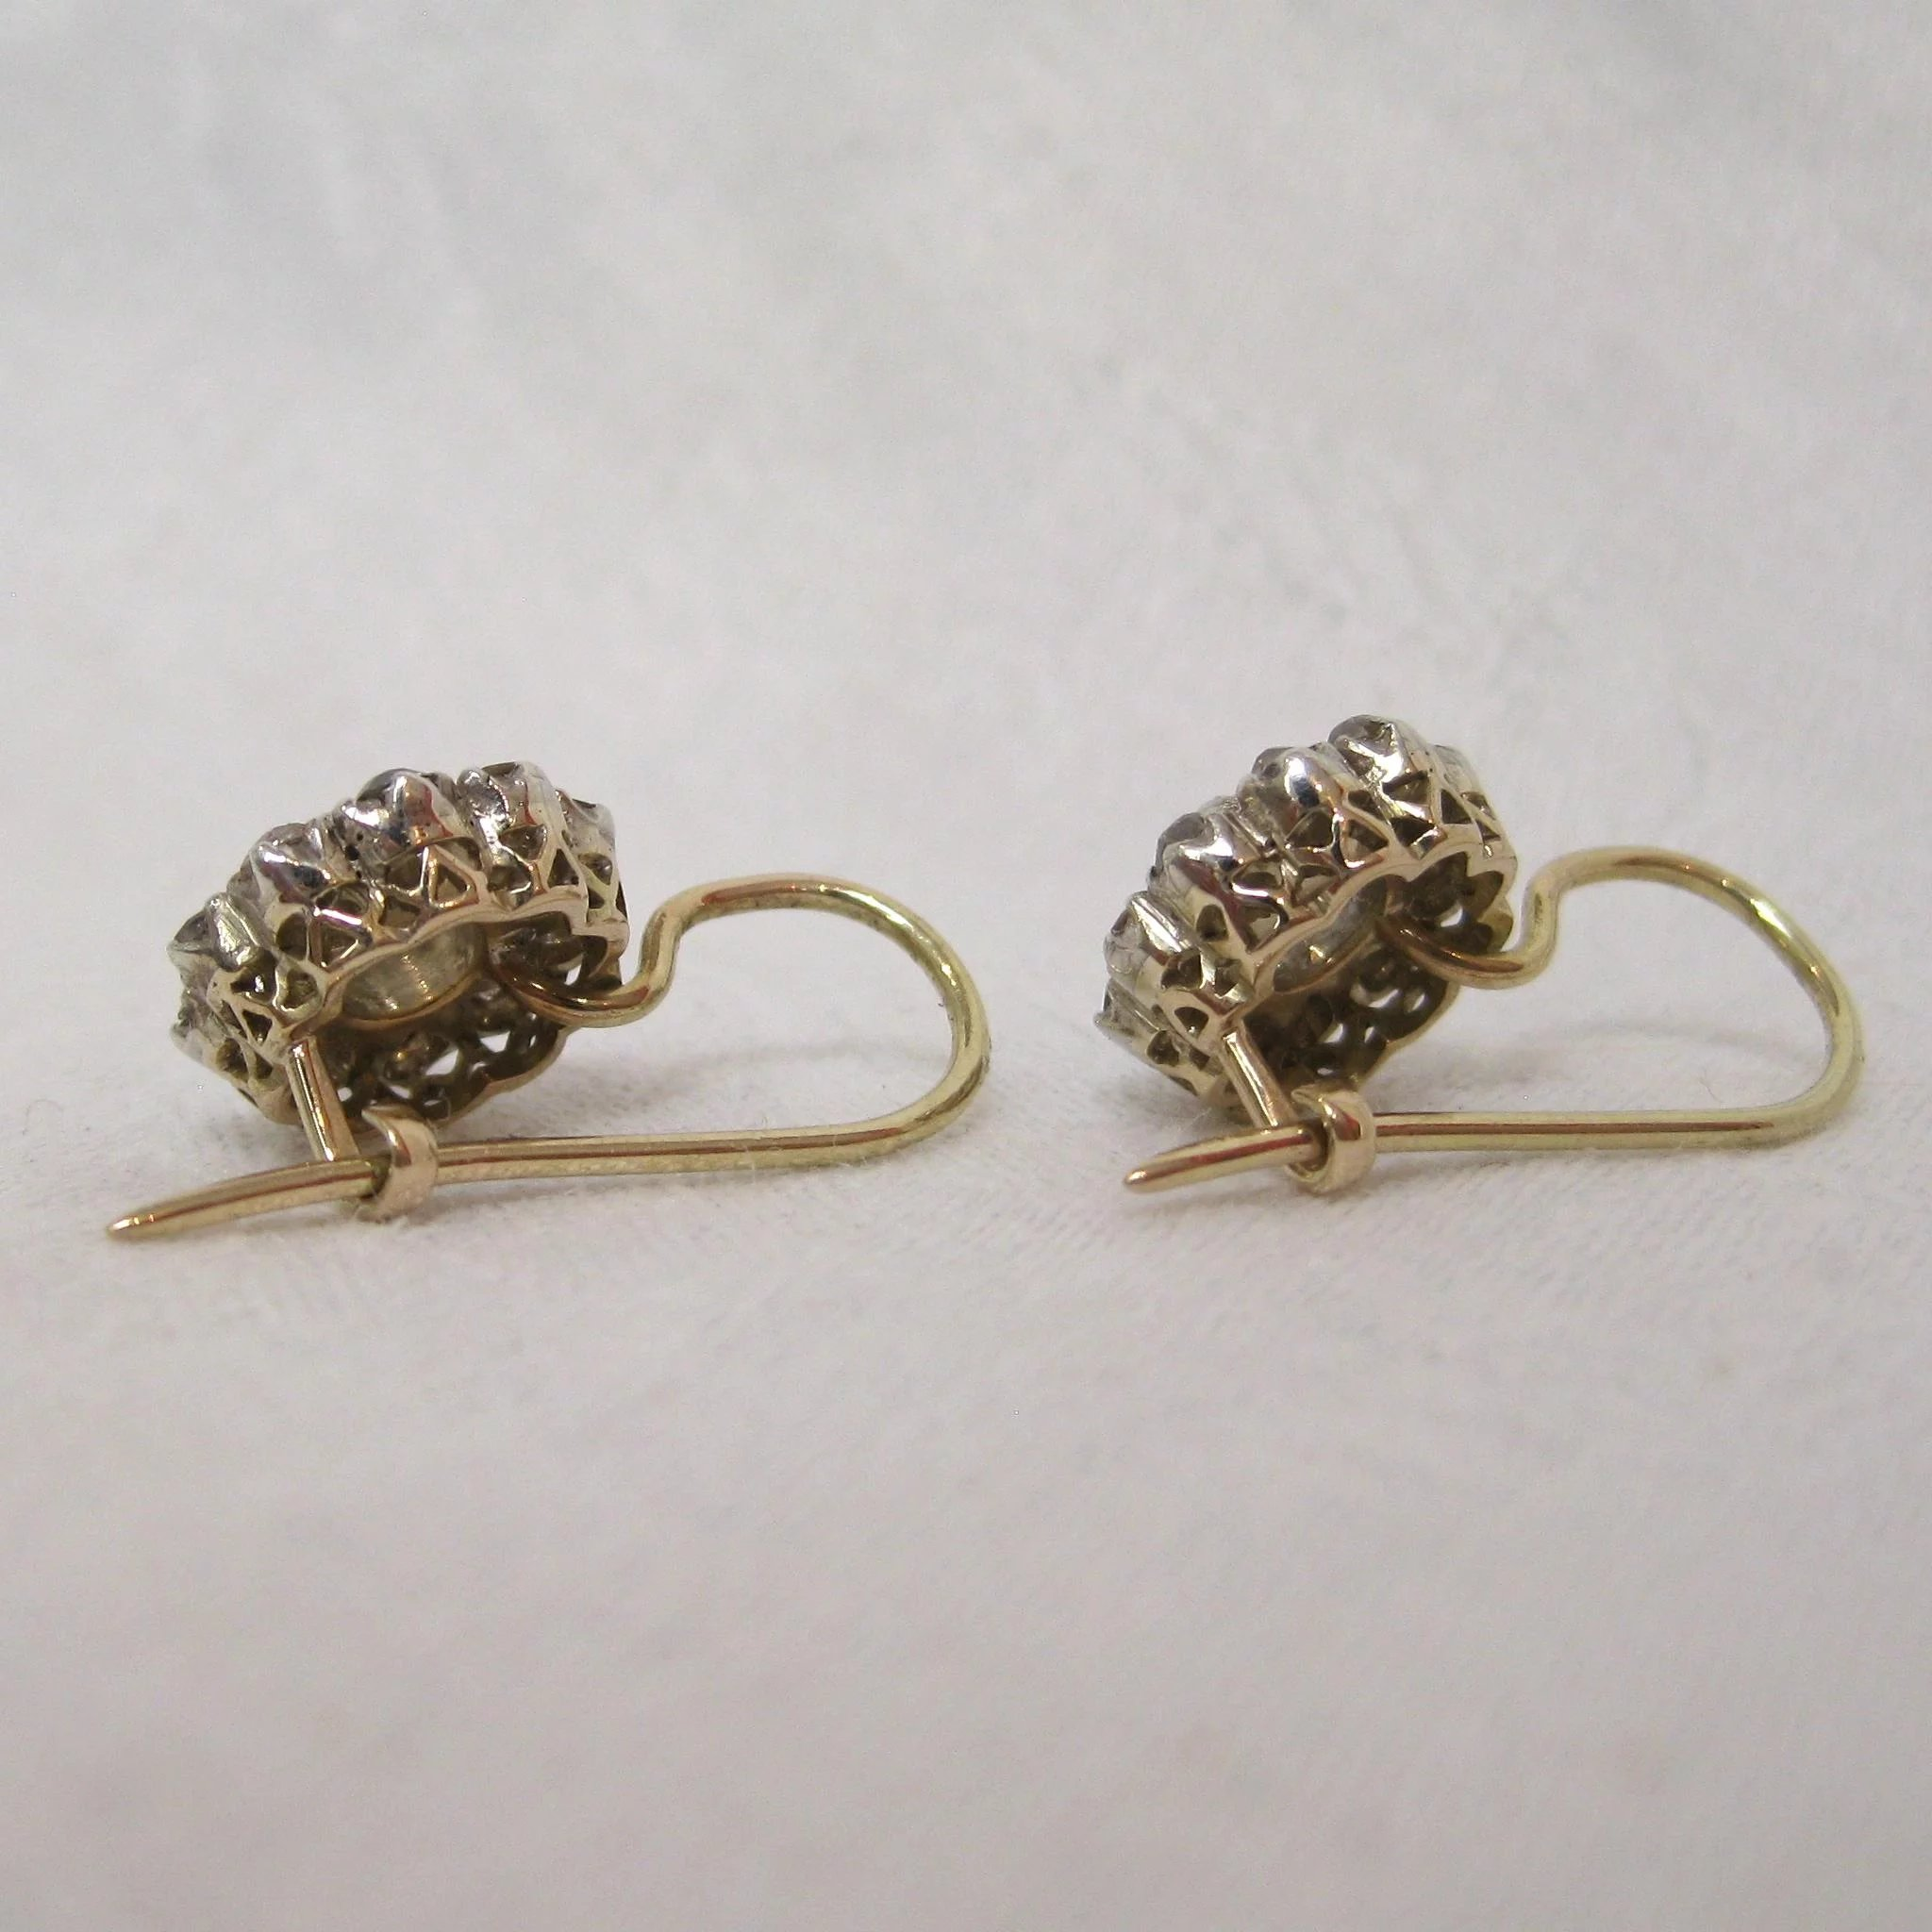 vintage studs rose jewelry extraordinary antique shop earrings diamond georgianrosecutstuds reverie nyc cut img georgian